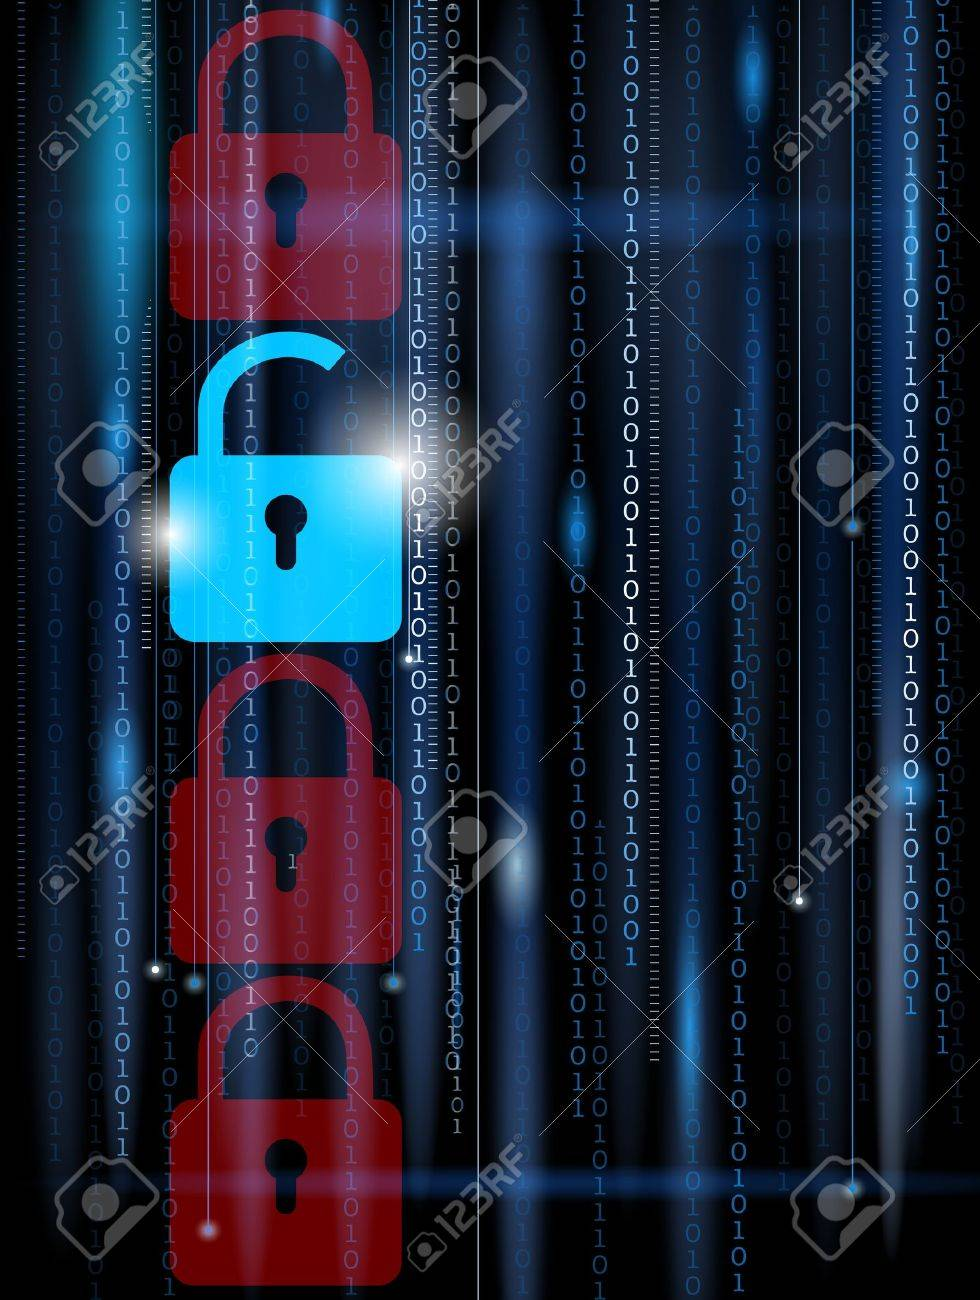 Abstract computer background - security concept Stock Vector - 19500730